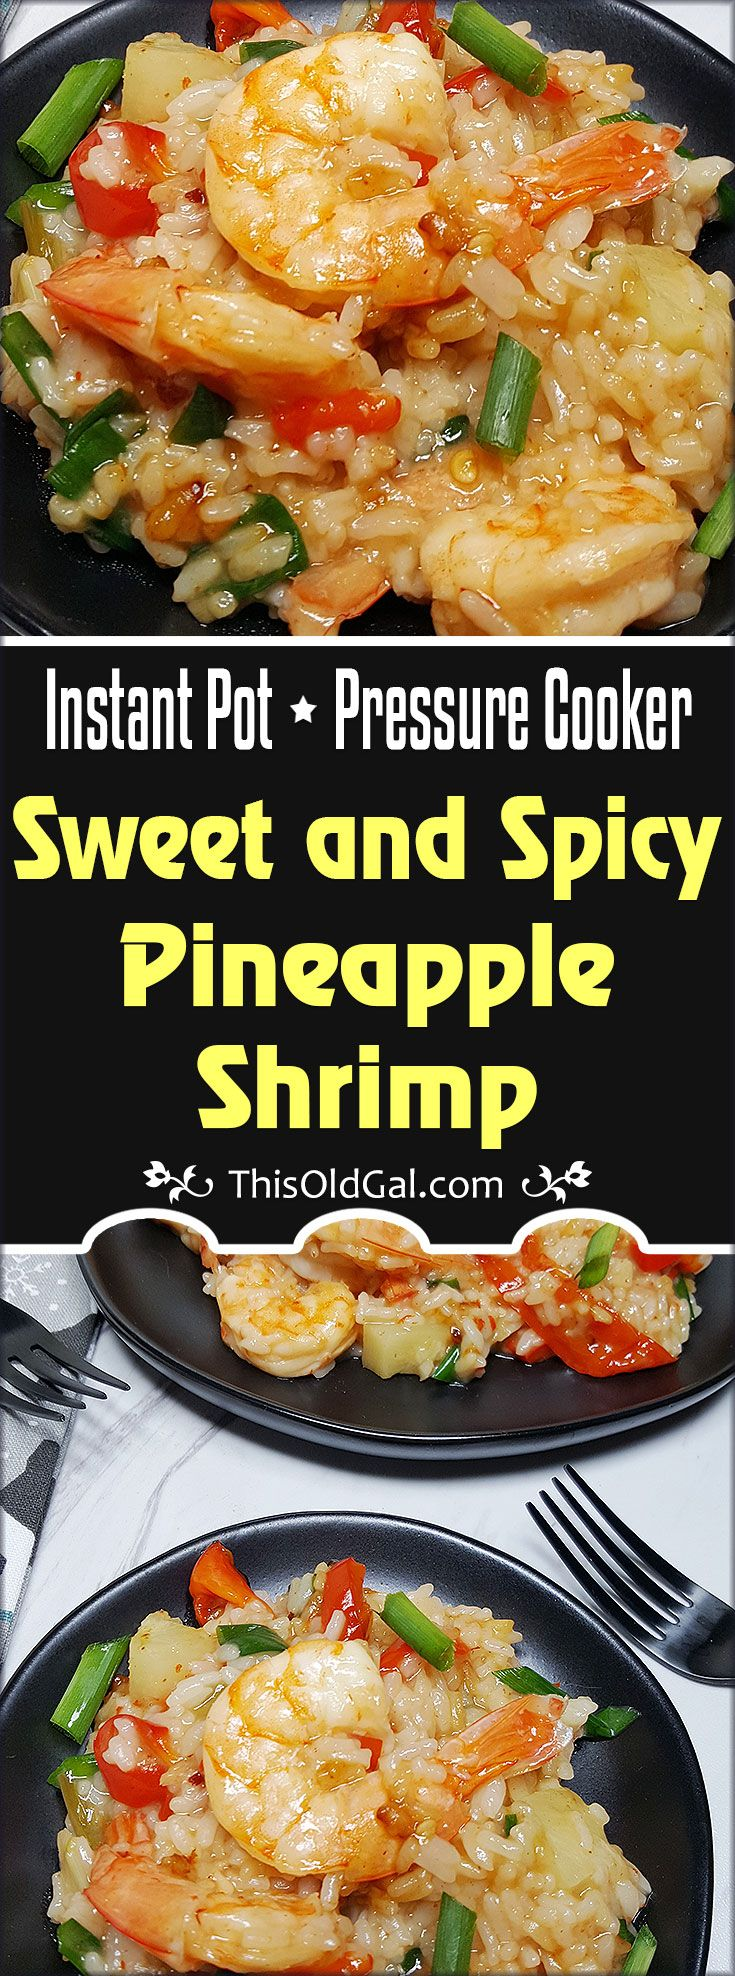 The beauty of this Pressure Cooker Sweet and Spicy Pineapple Shrimp recipe is that you can turn it into a Risotto or Rice dish, or, use Quinoa for a higher protein, lower carb meal! via @thisoldgalcooks